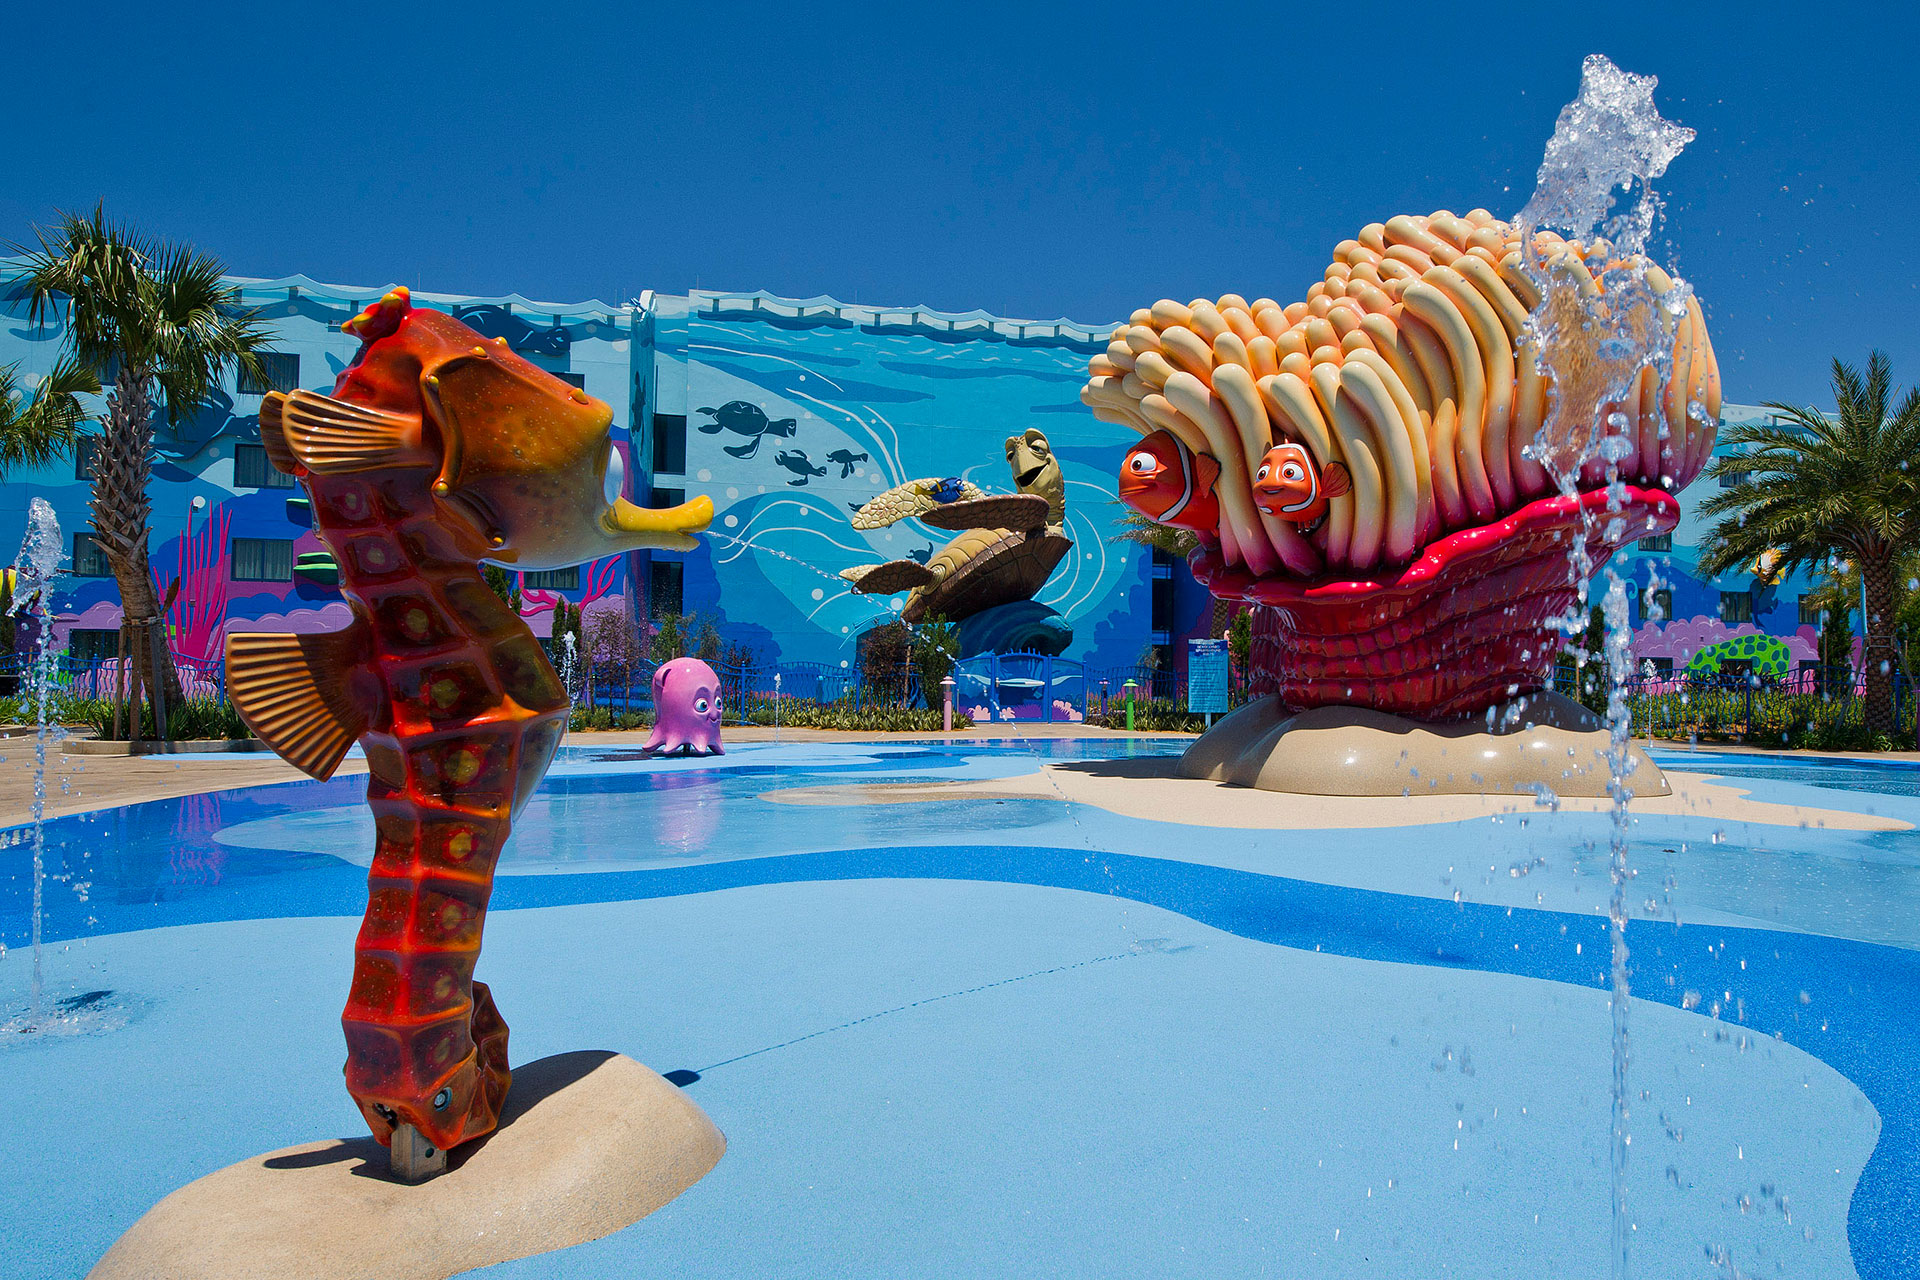 Big Blue Pool at Finding Nemo area of Art of Animation